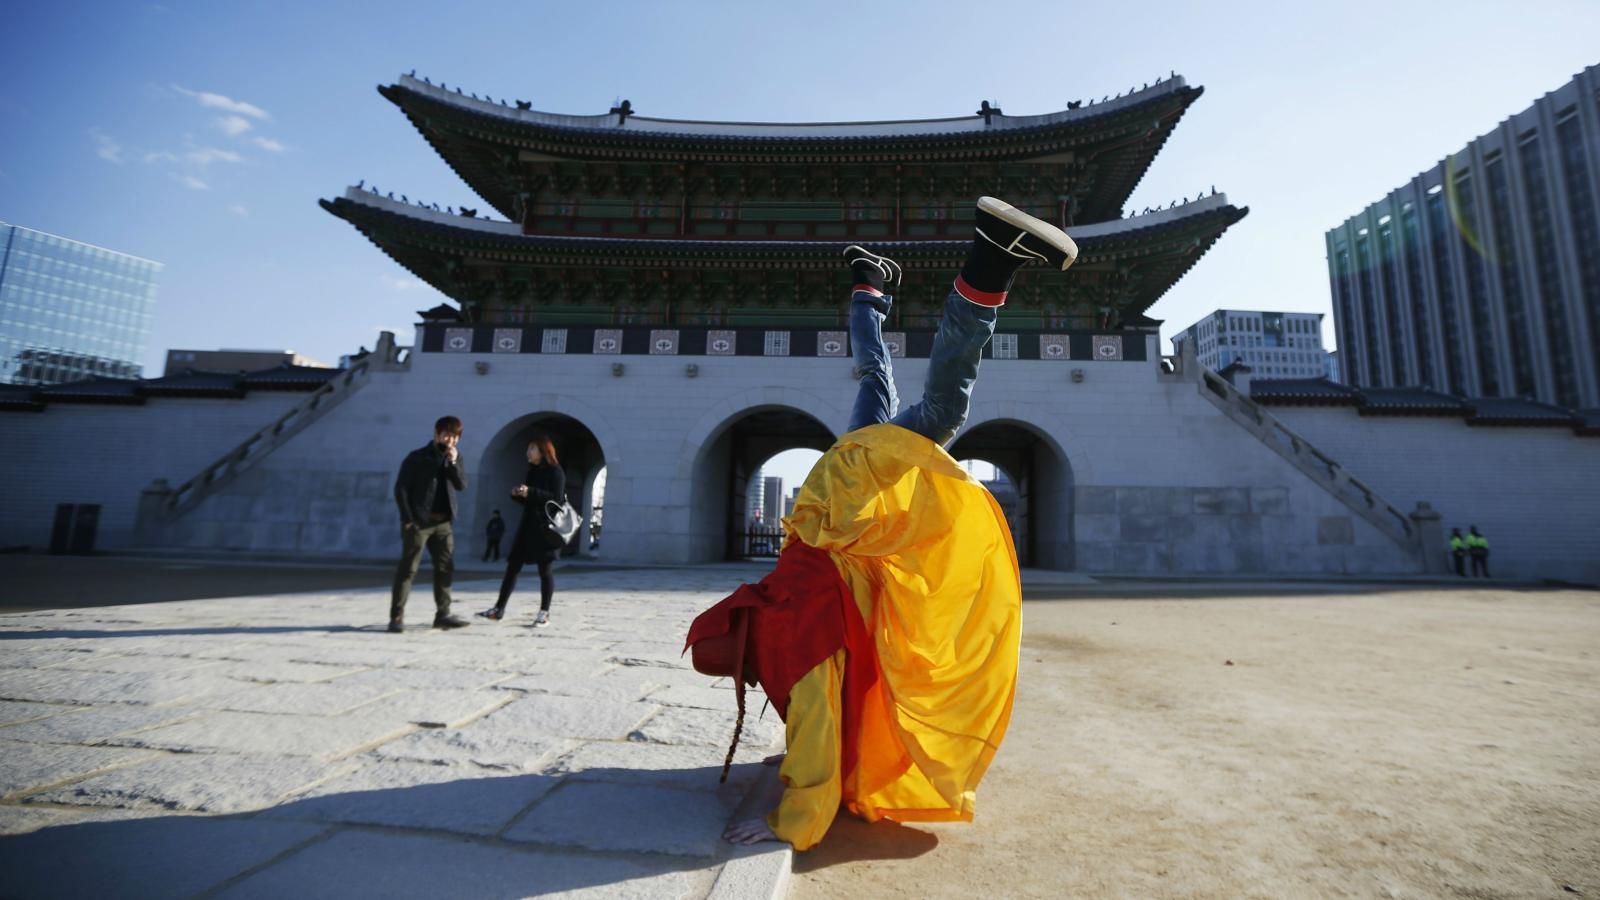 By 2020, South Koreans will have a better standard of living than